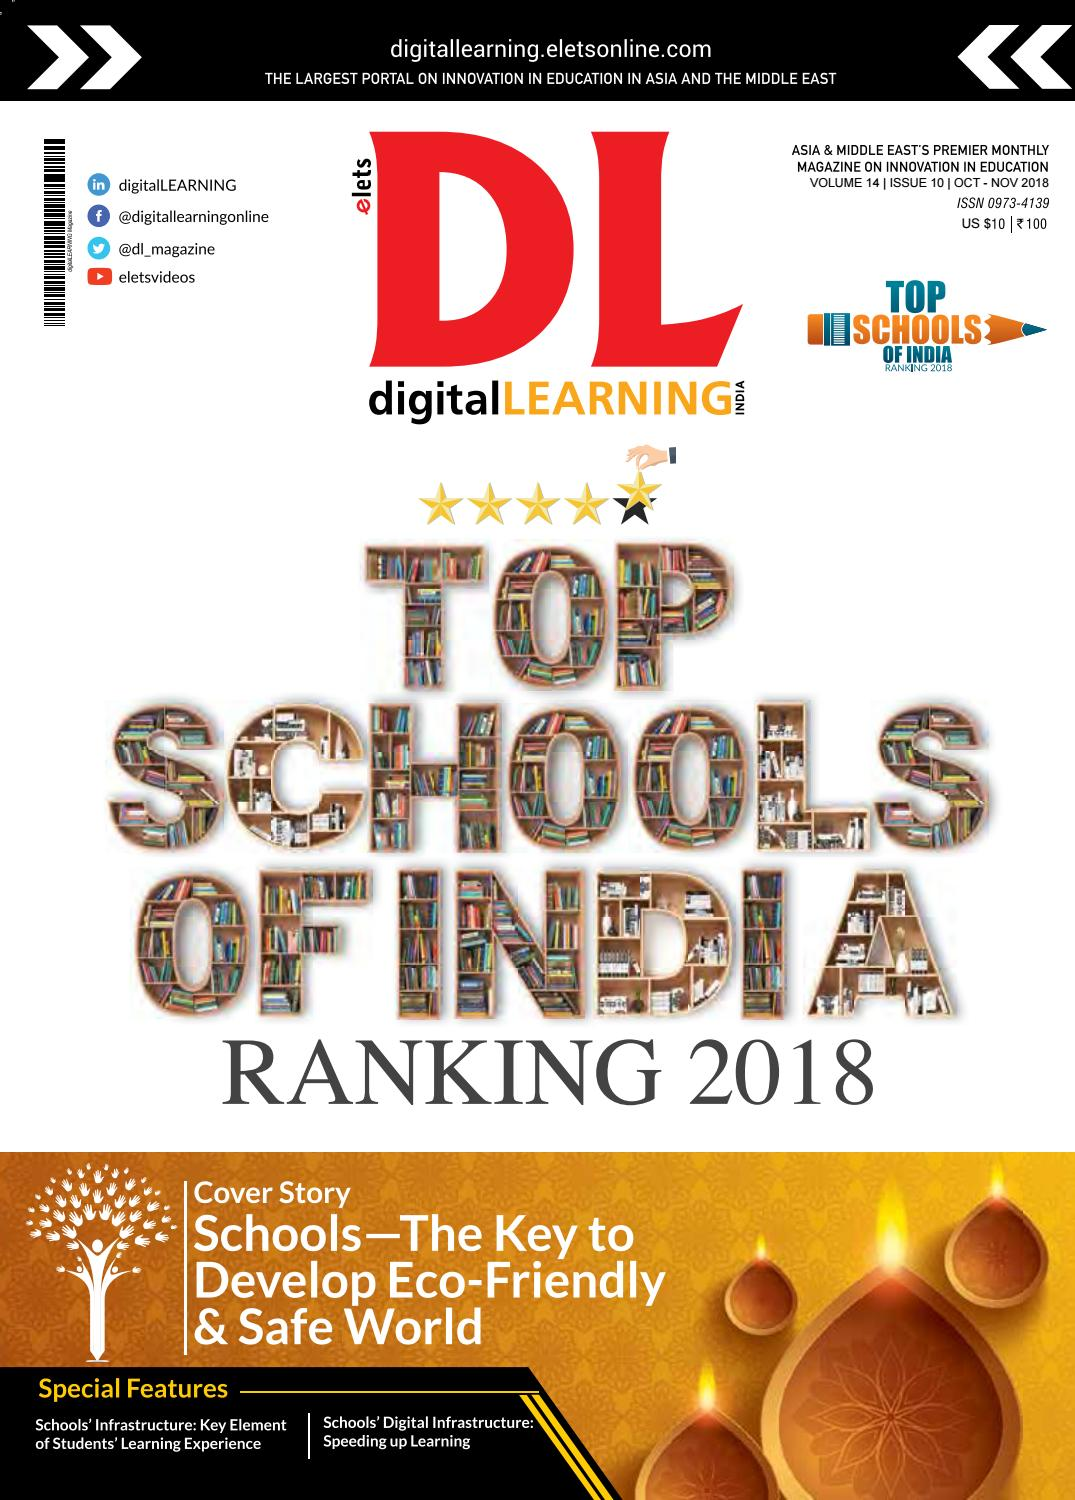 DigitalLEARNING Top Schools of India Ranking 2018 by digital